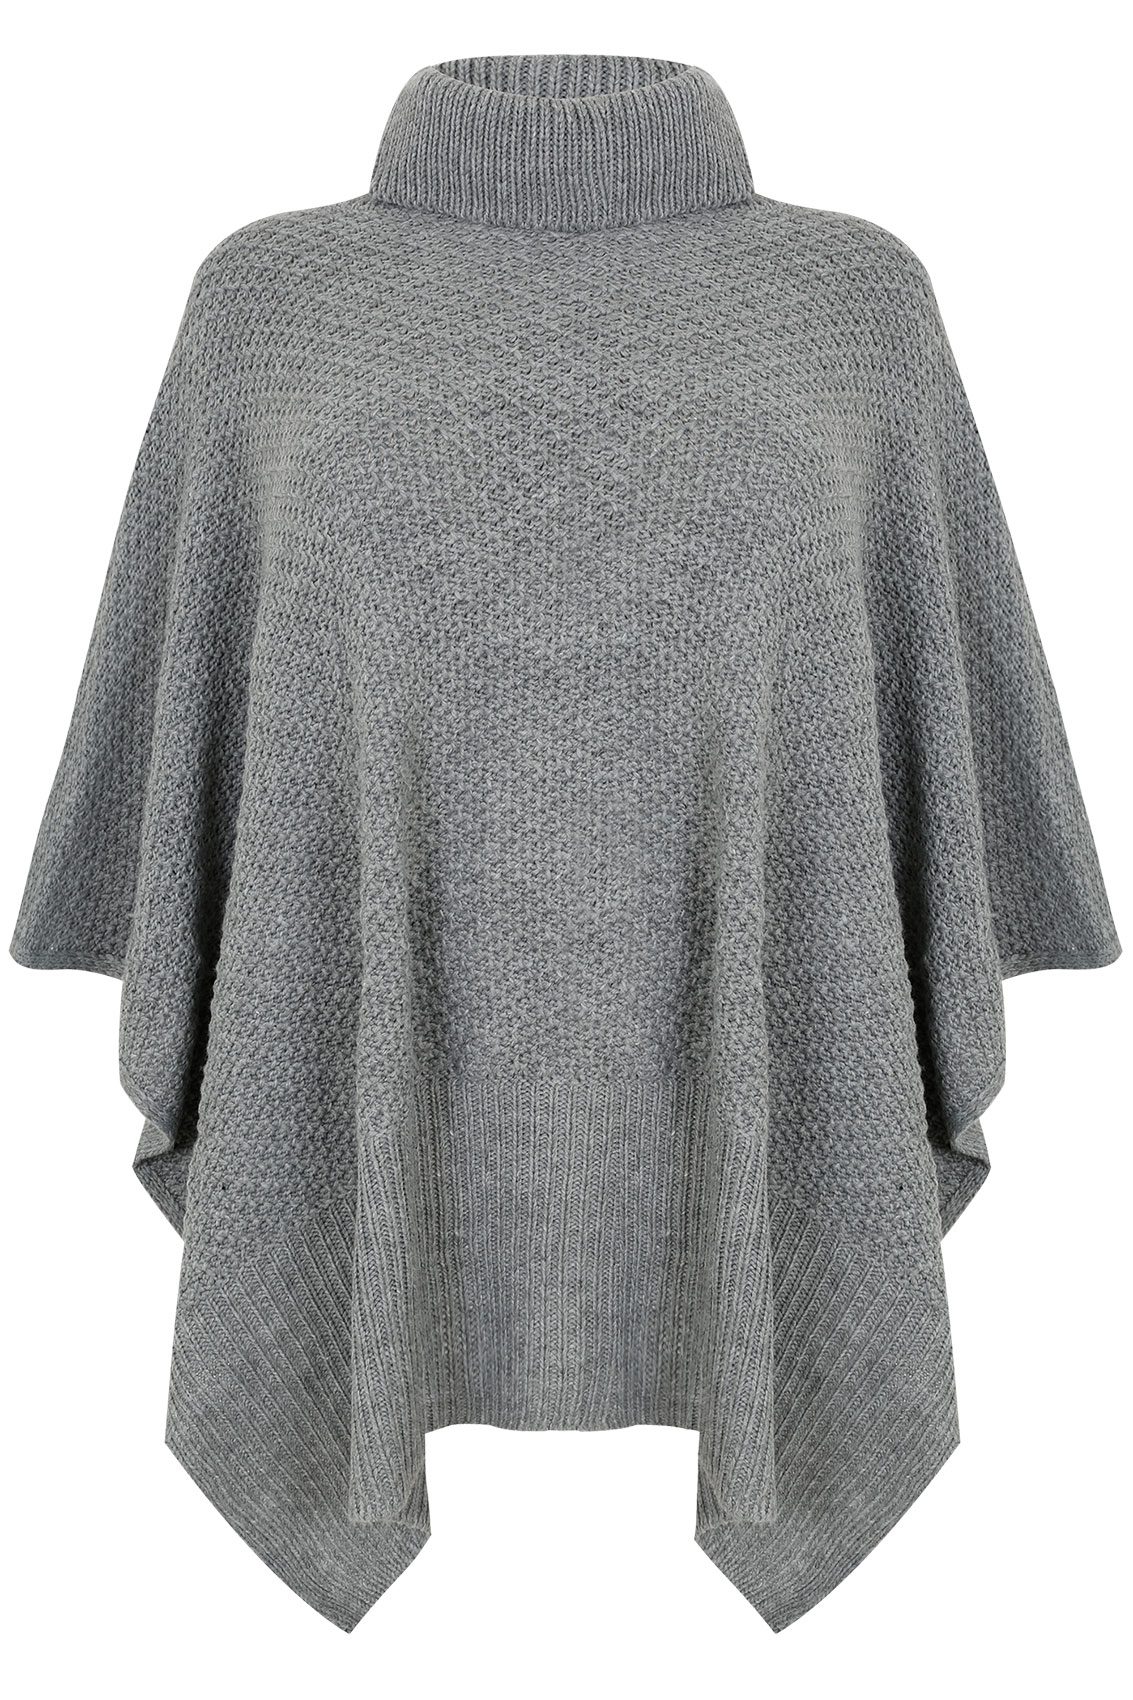 Grey Knitted Cowl Neck Poncho, One size